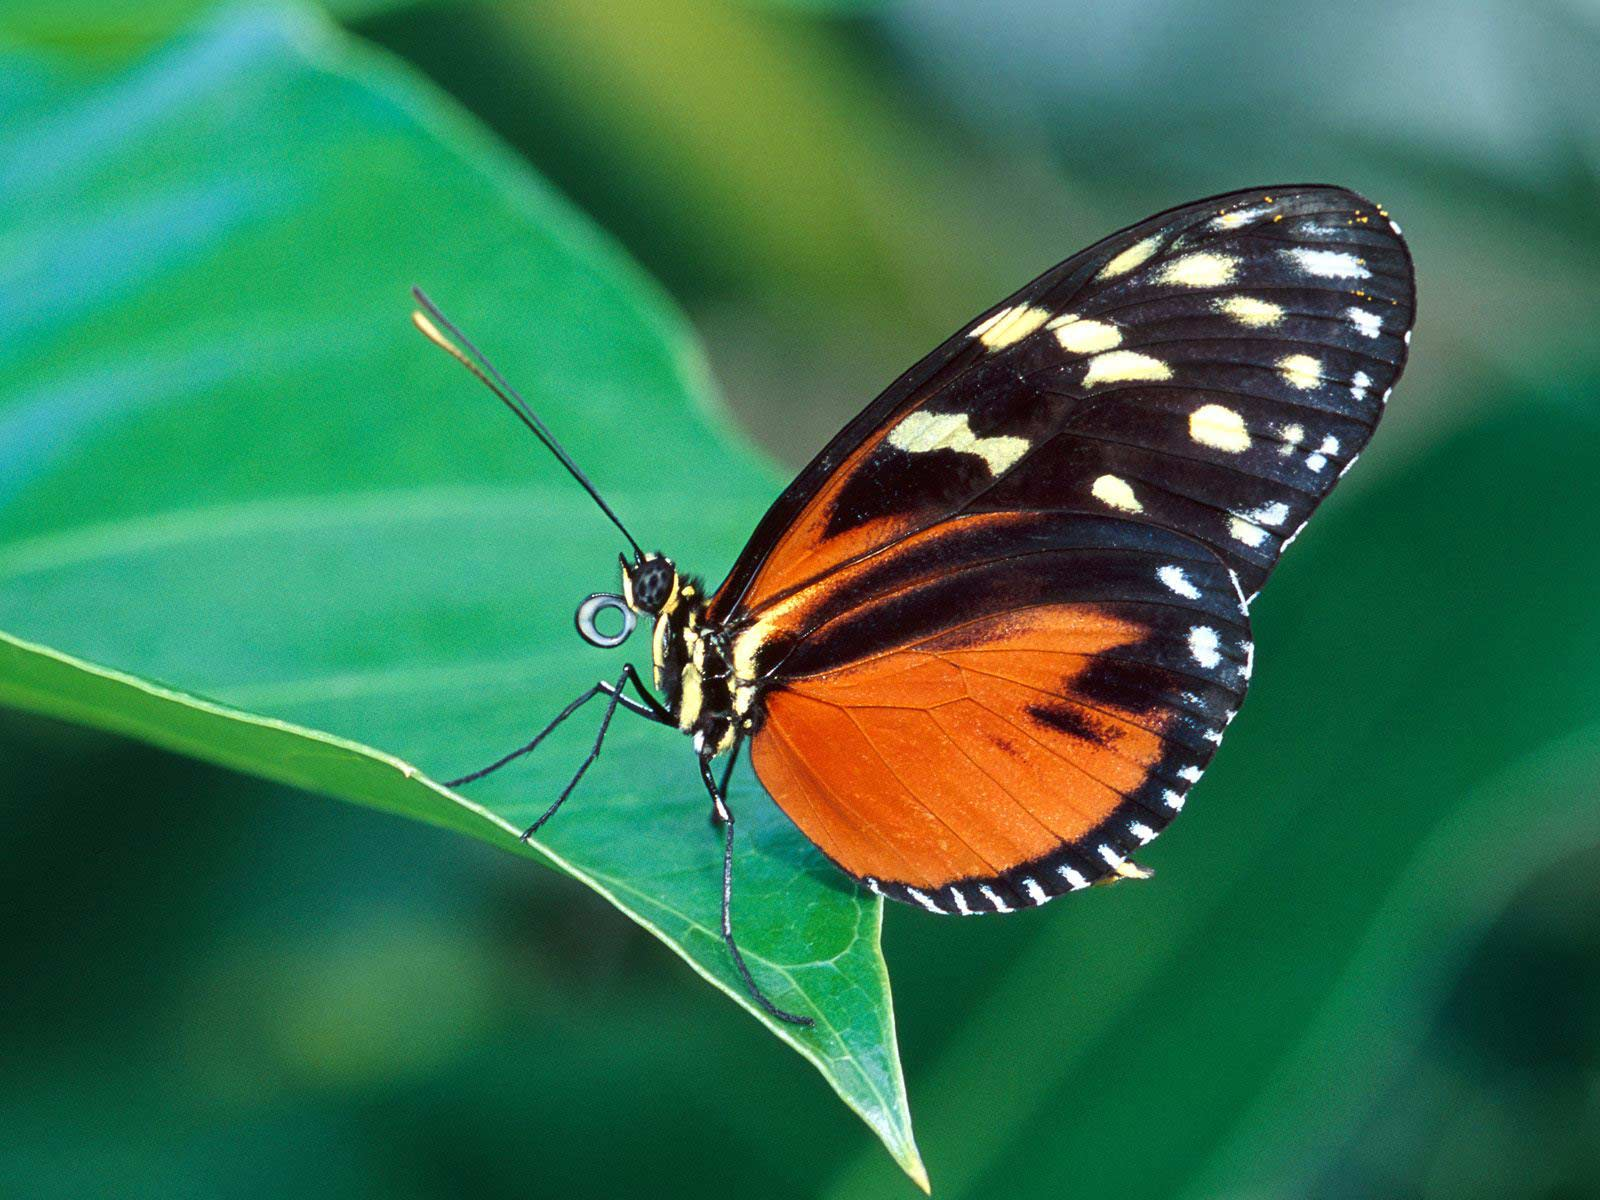 butterfly hq wallpaper 1024x768 - photo #49